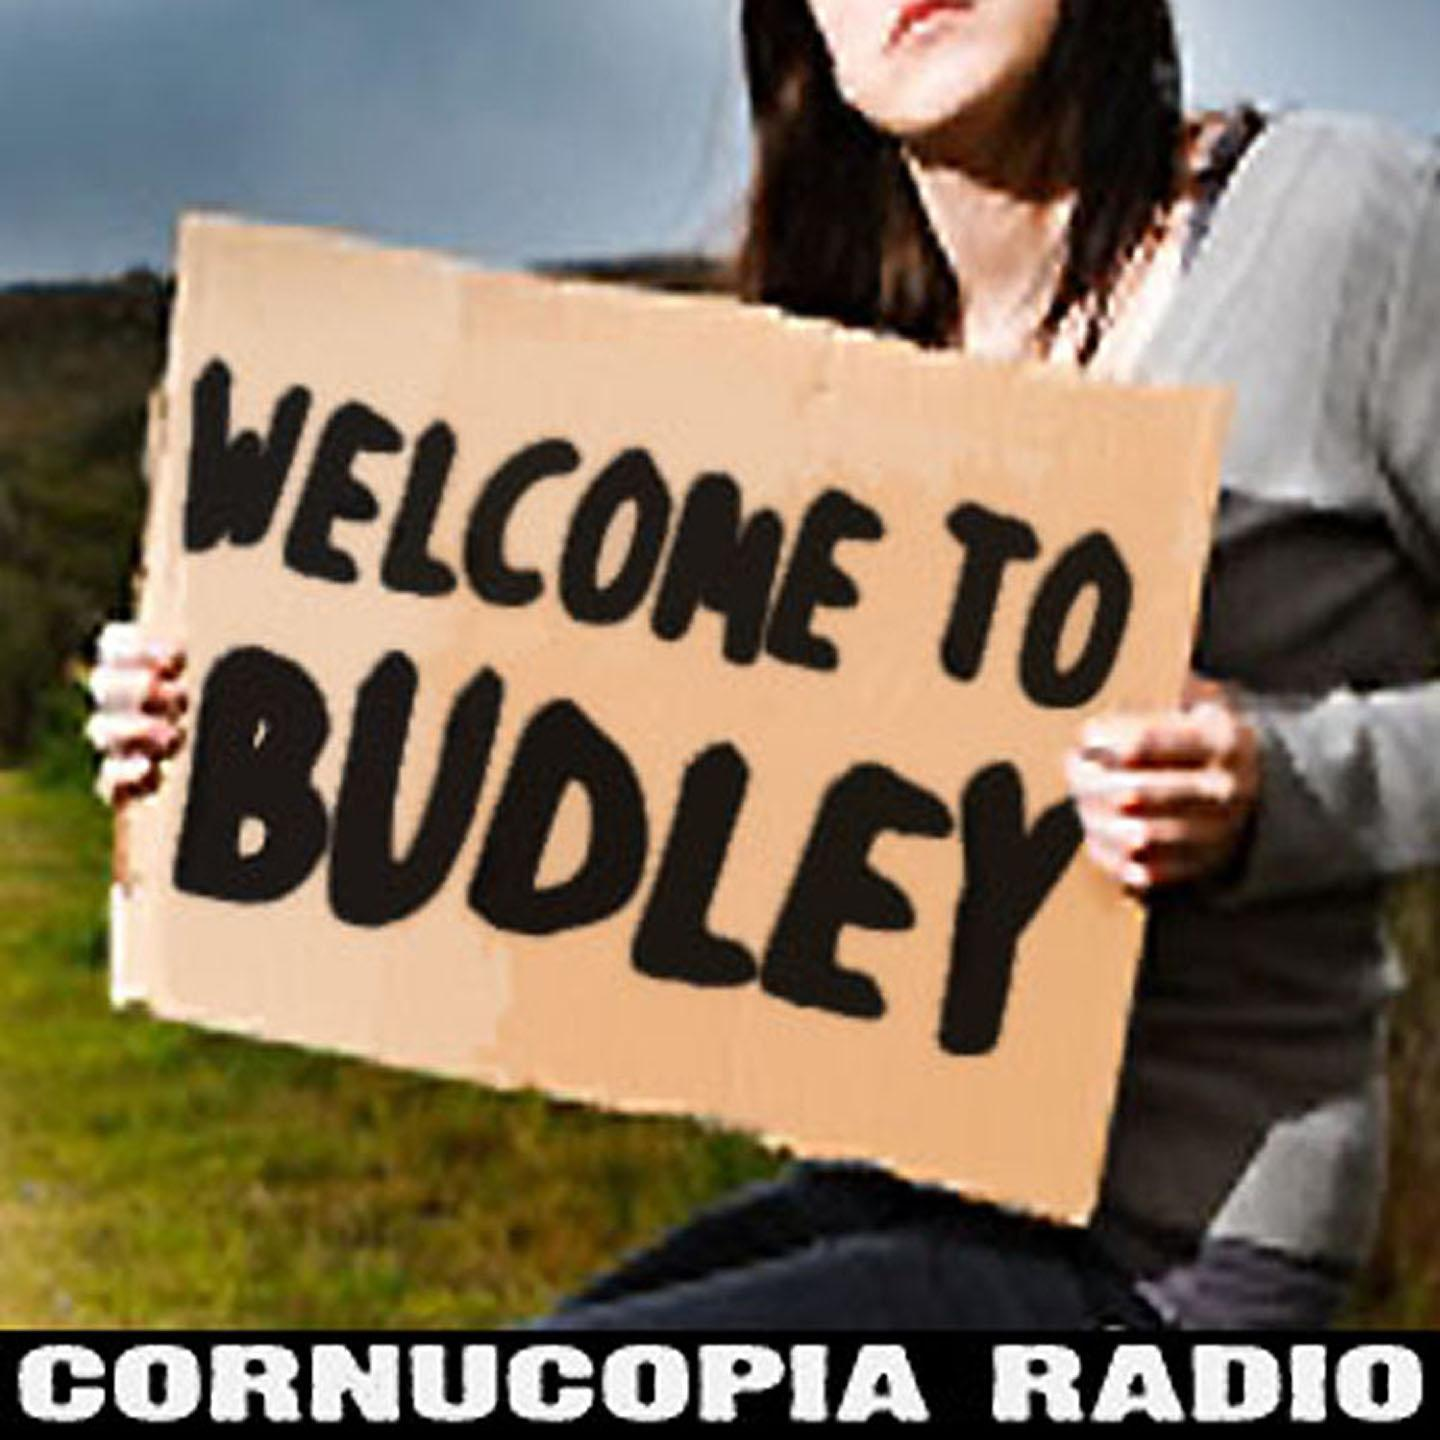 Welcome to Budley - A Radio Sketch Show